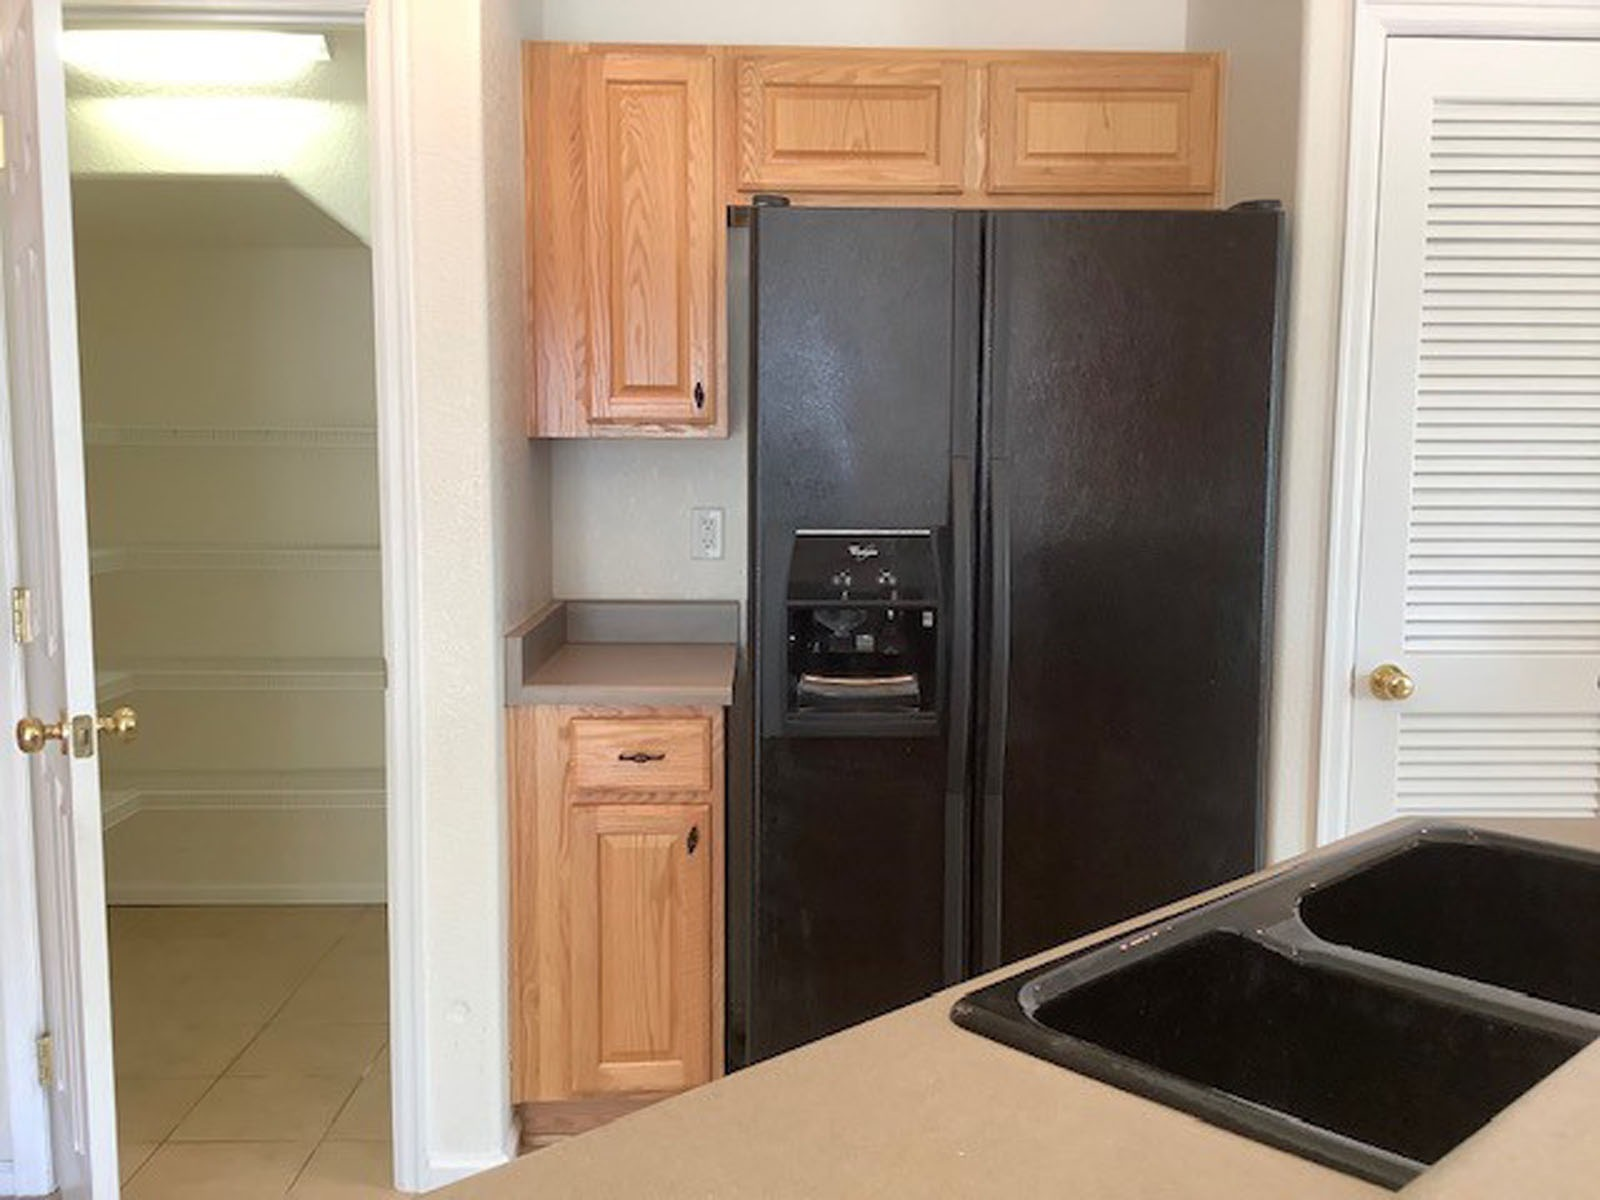 Kitchen Appliances are Included